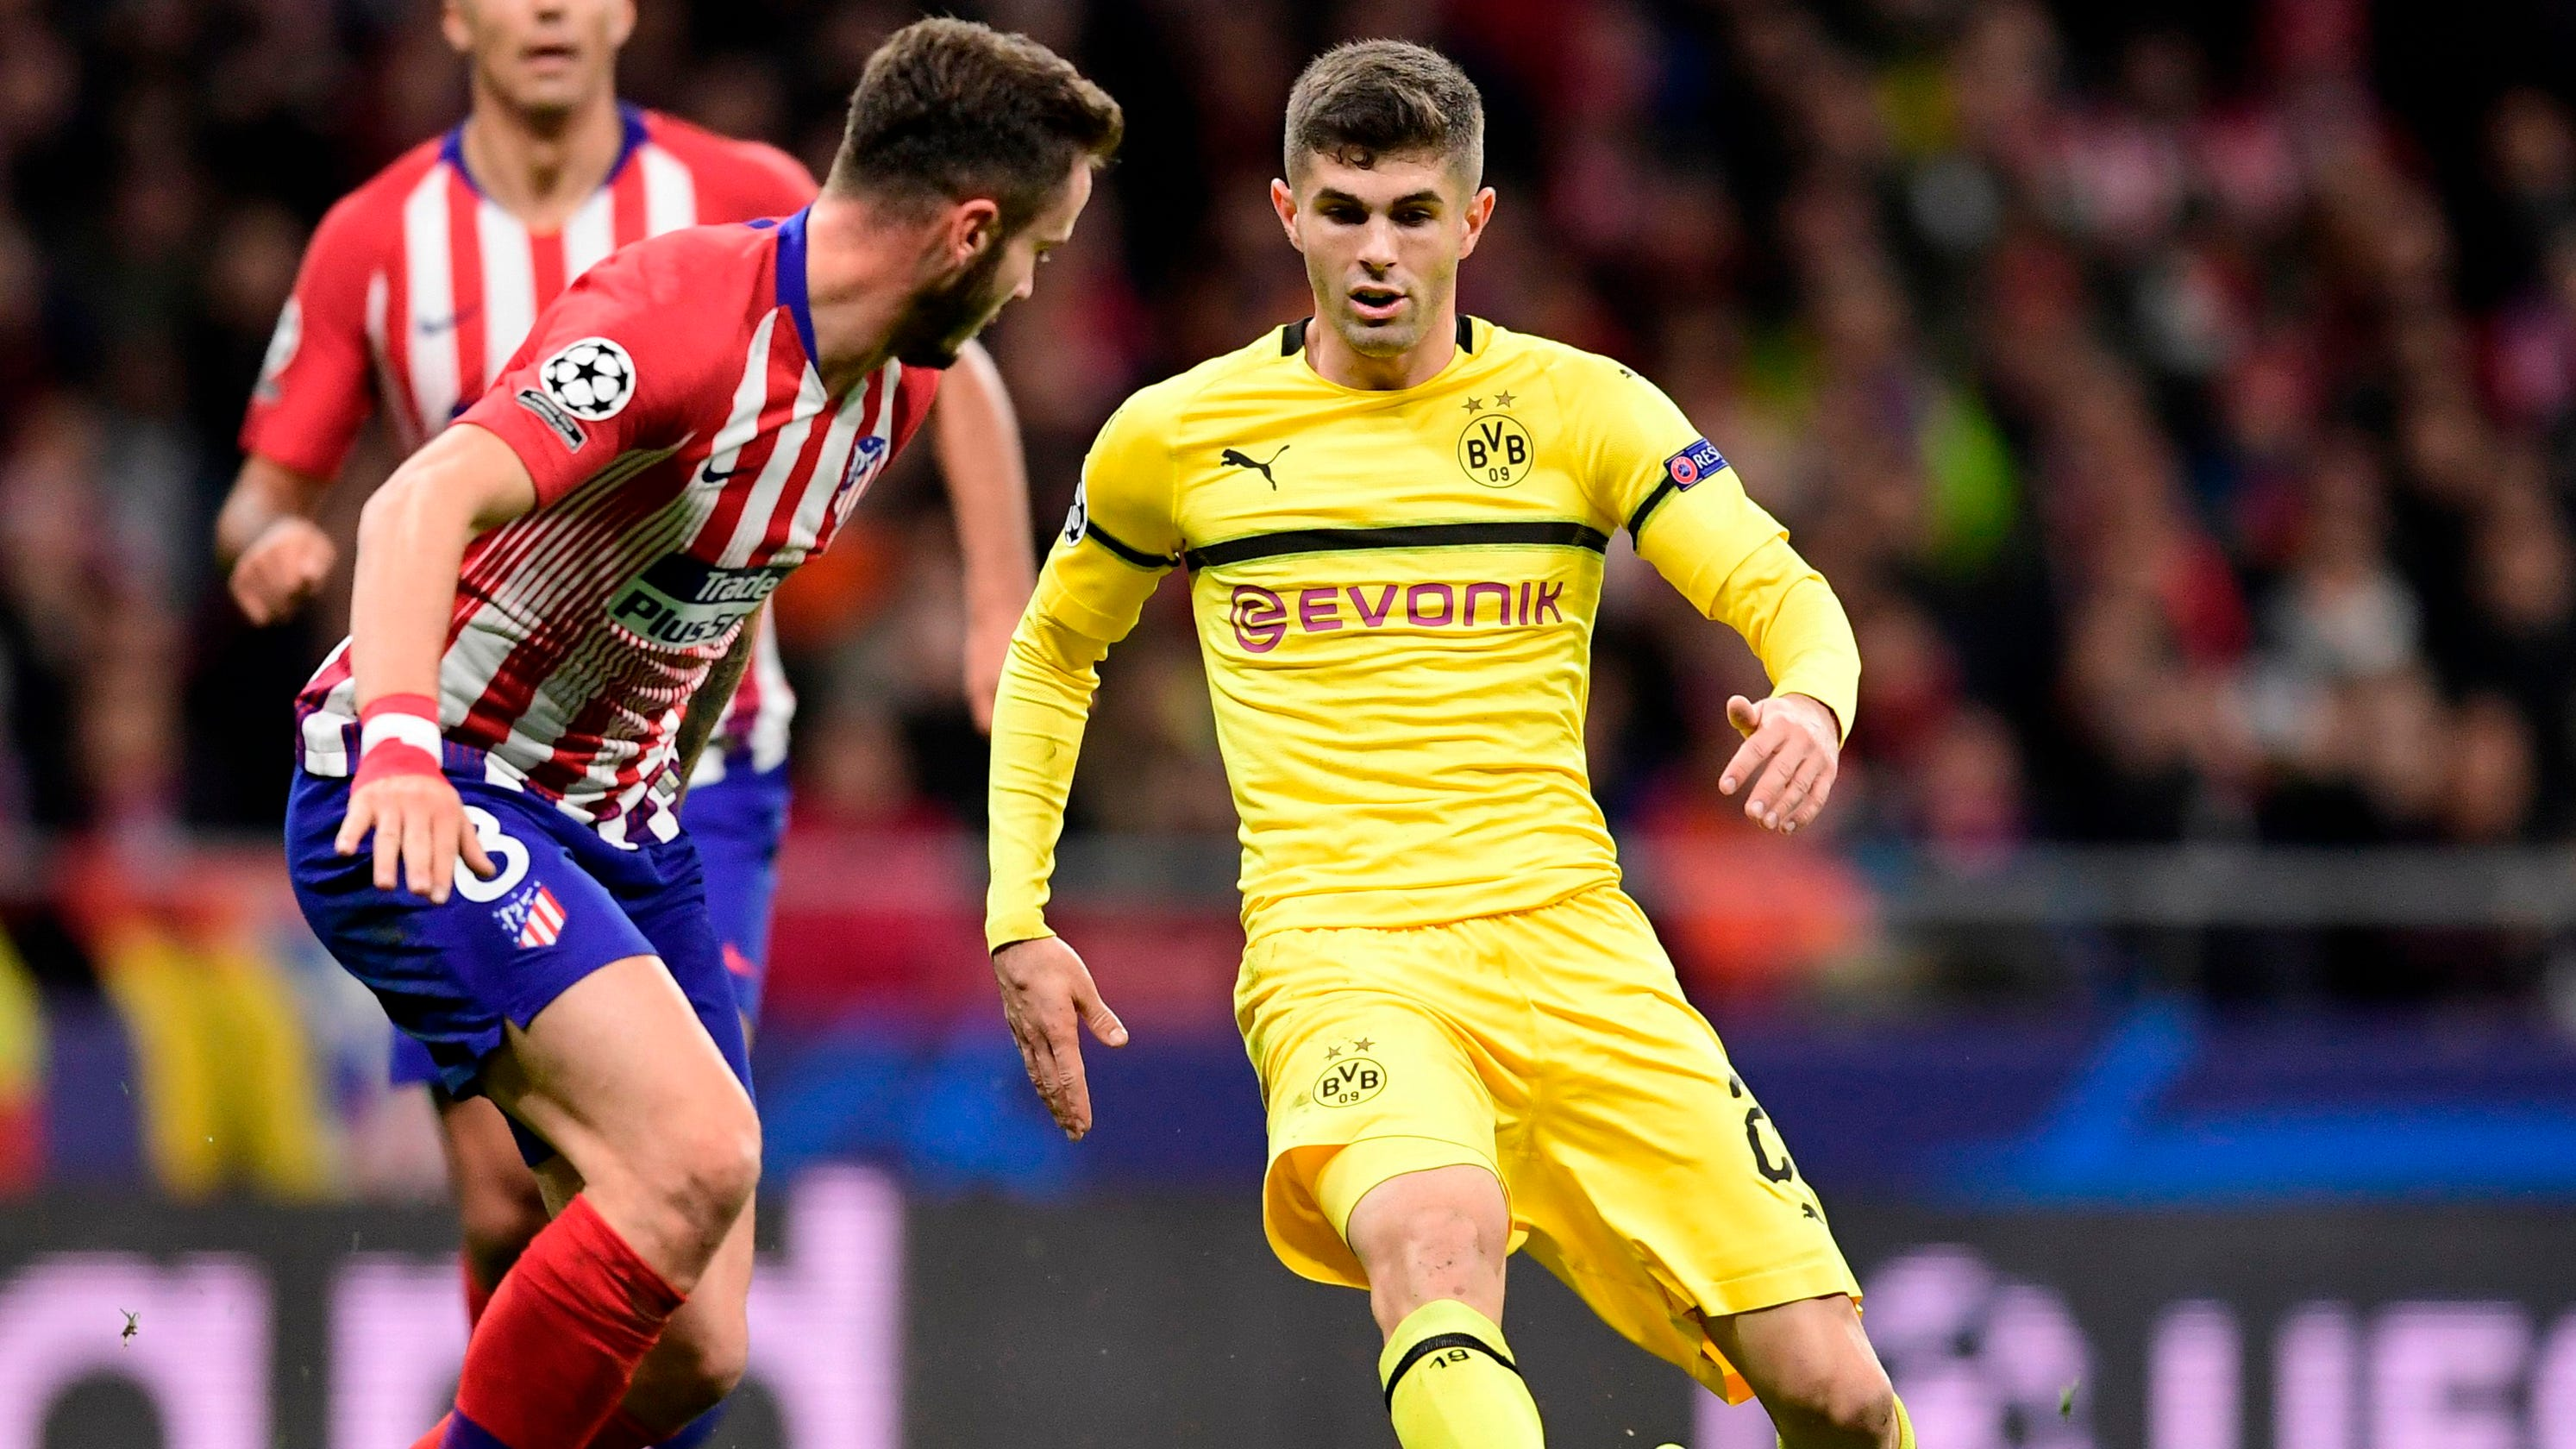 newest 0cc72 4f7df Chelsea signs Christian Pulisic; U.S. star to remain at Dortmund